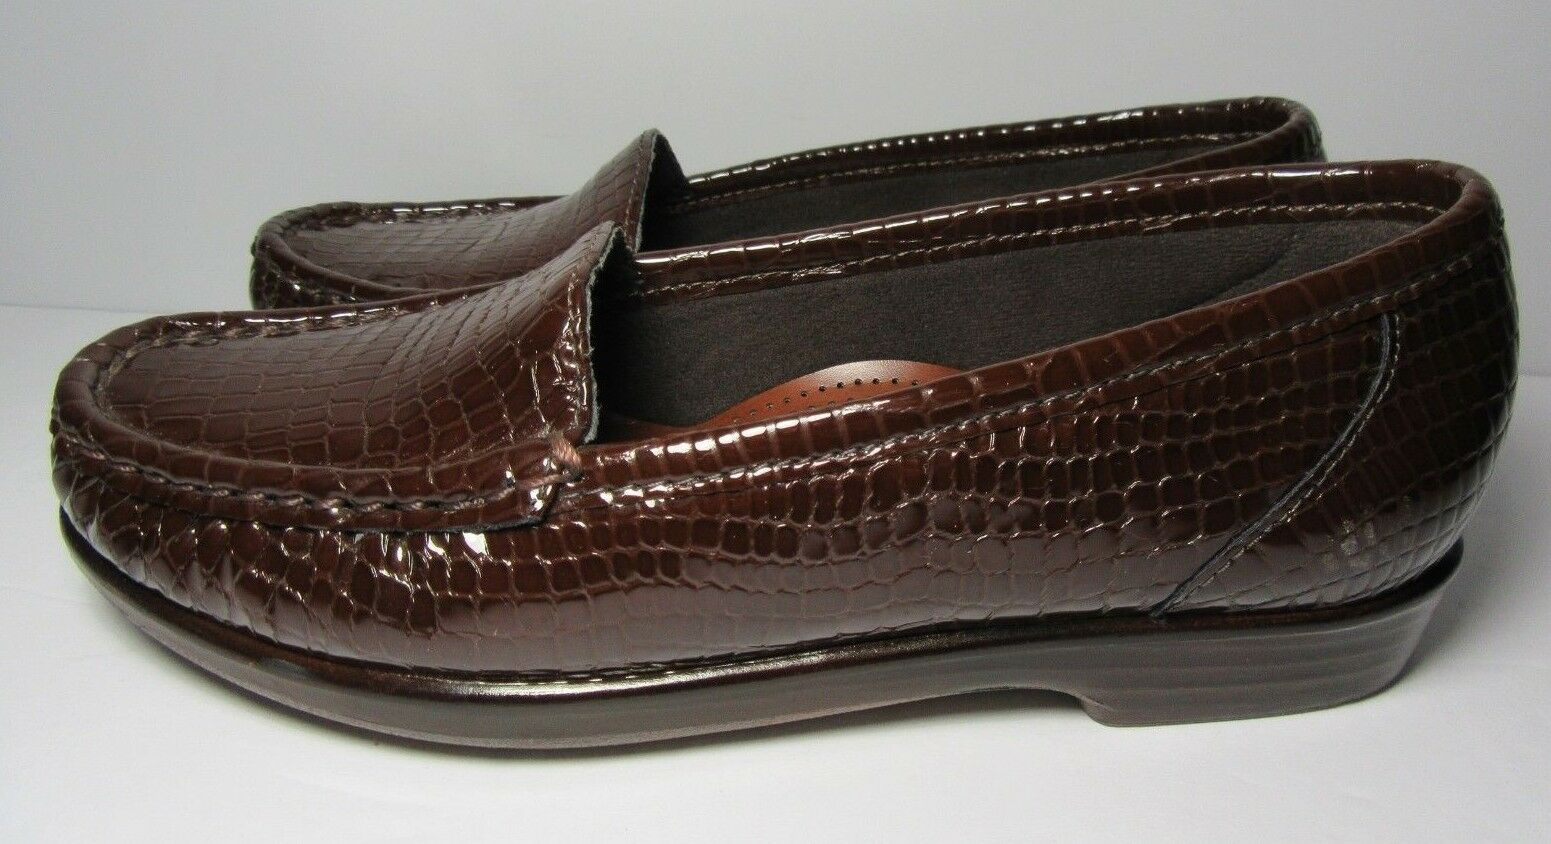 SAS Womens Tripad Comfort shoes Embossed Patent Brown Leather 4.5 M